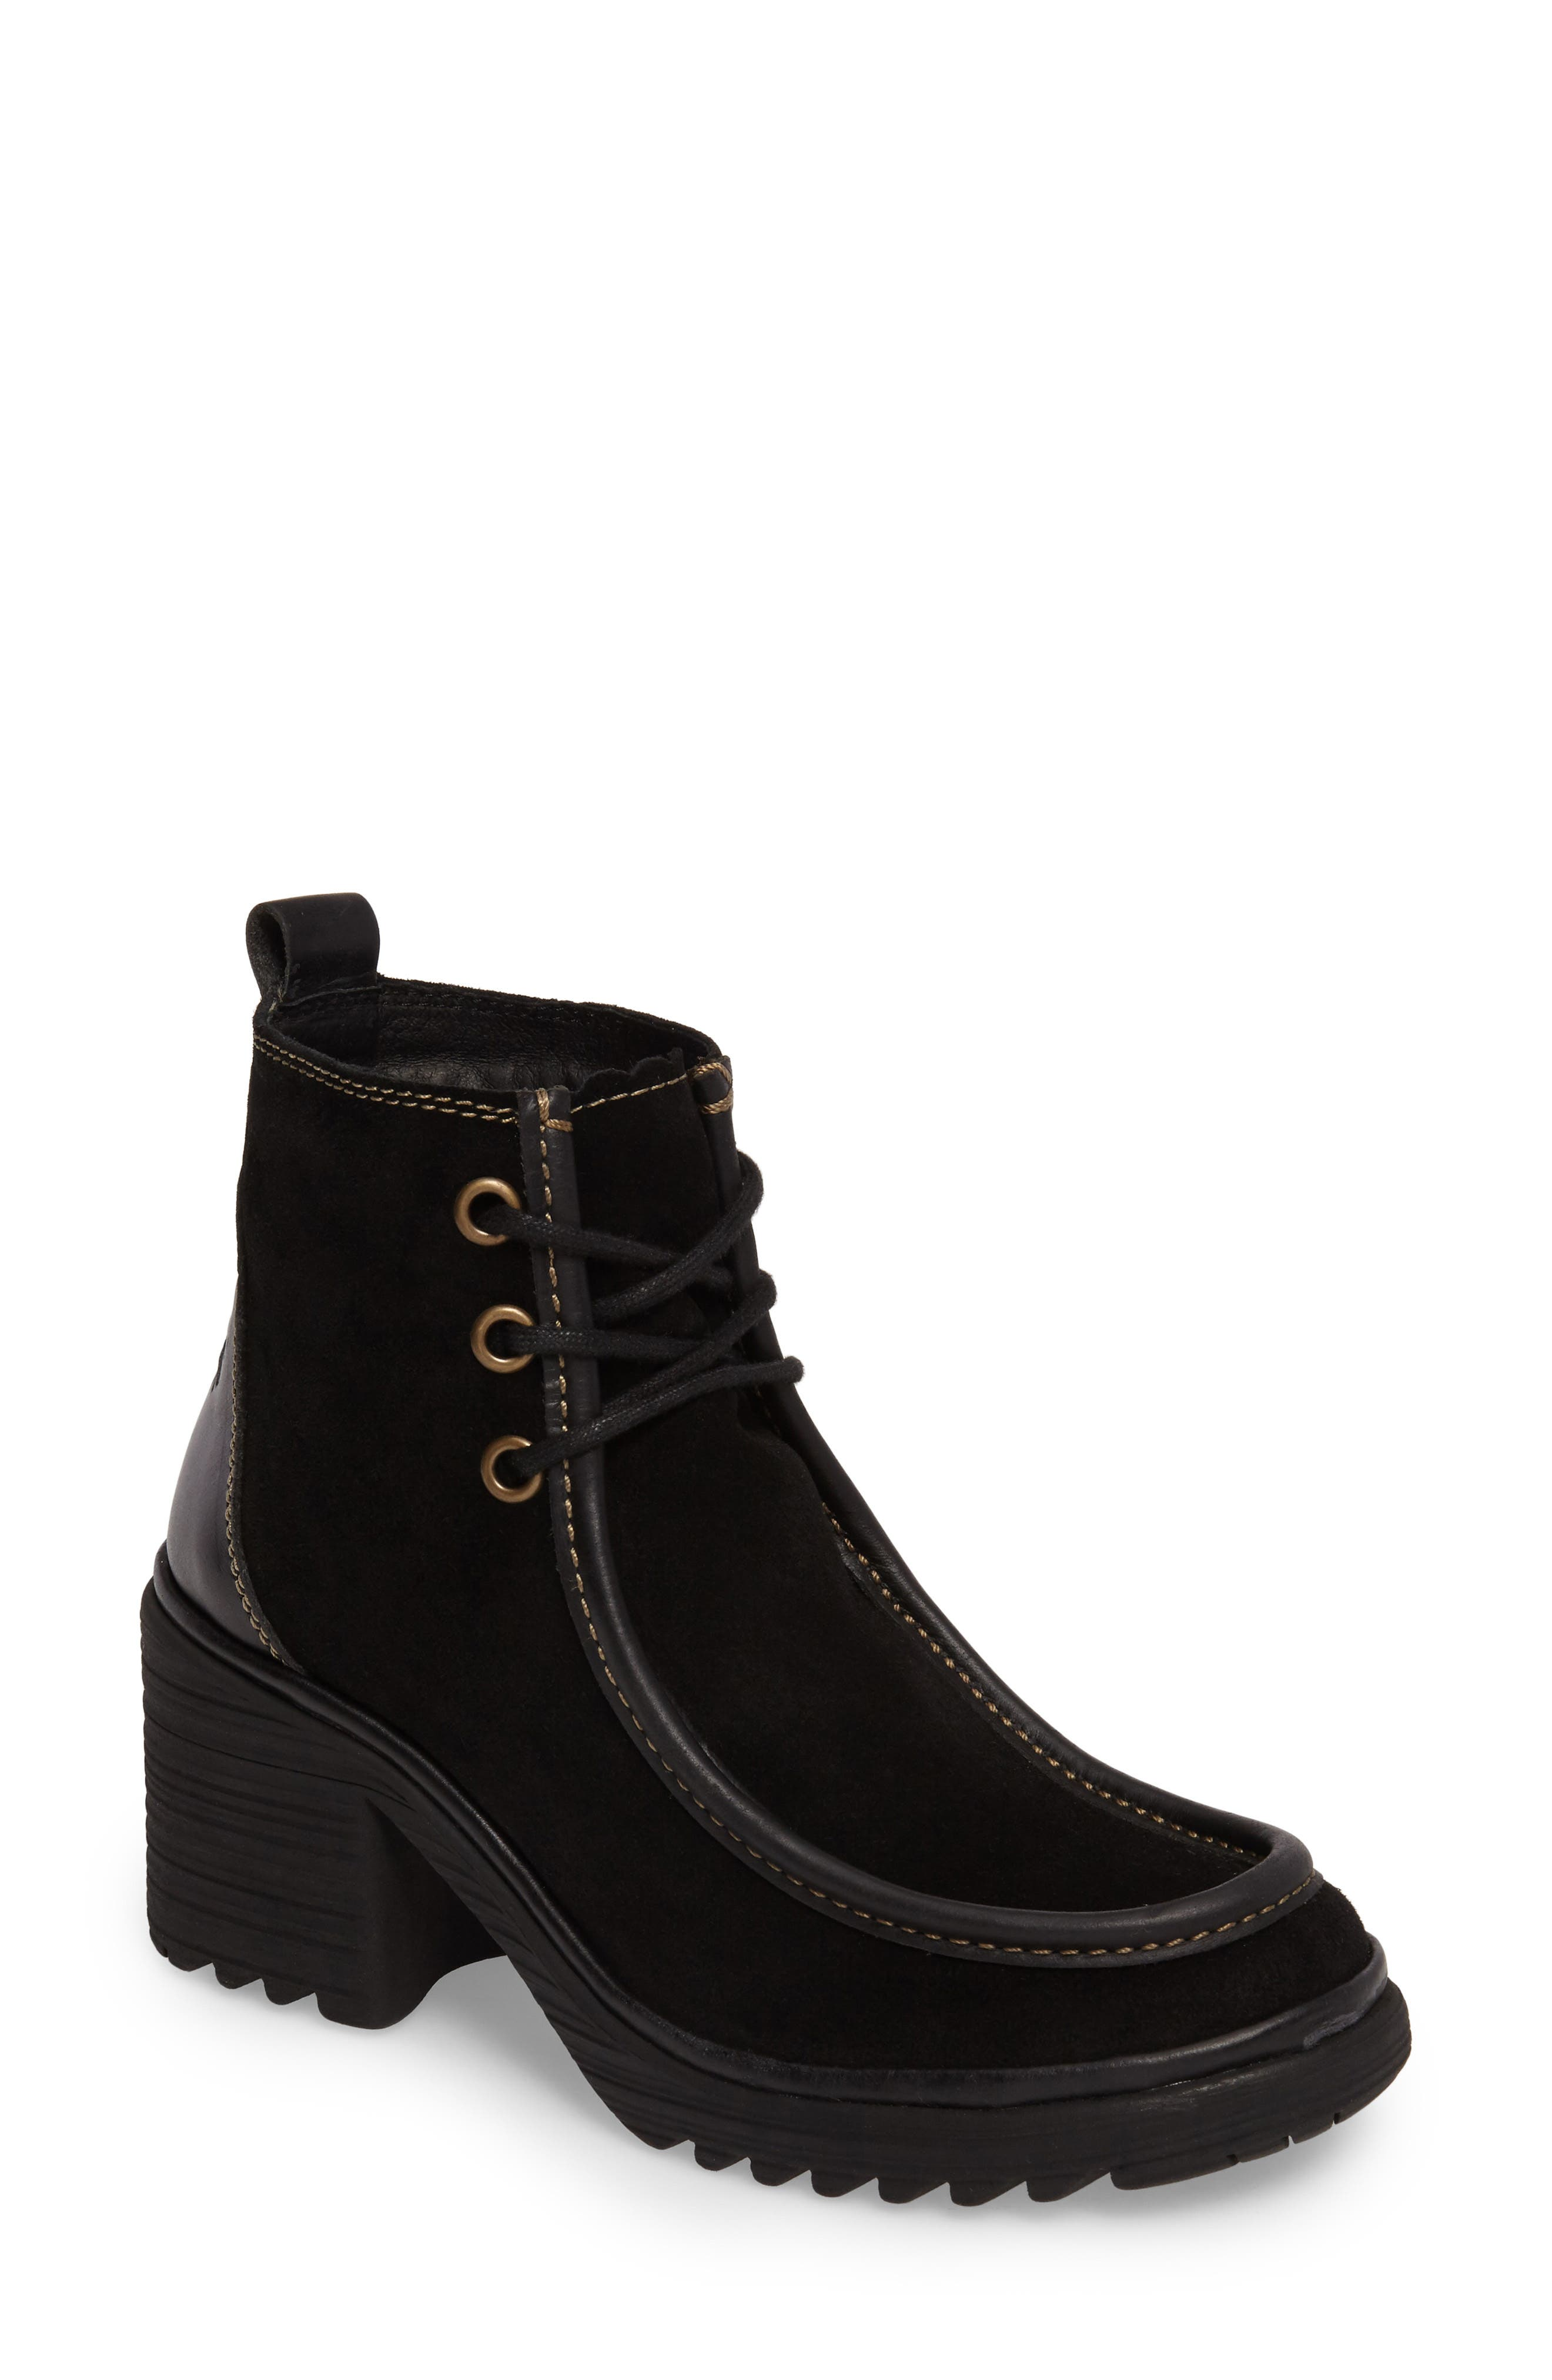 Wins Boot,                         Main,                         color, Black Oil Suede